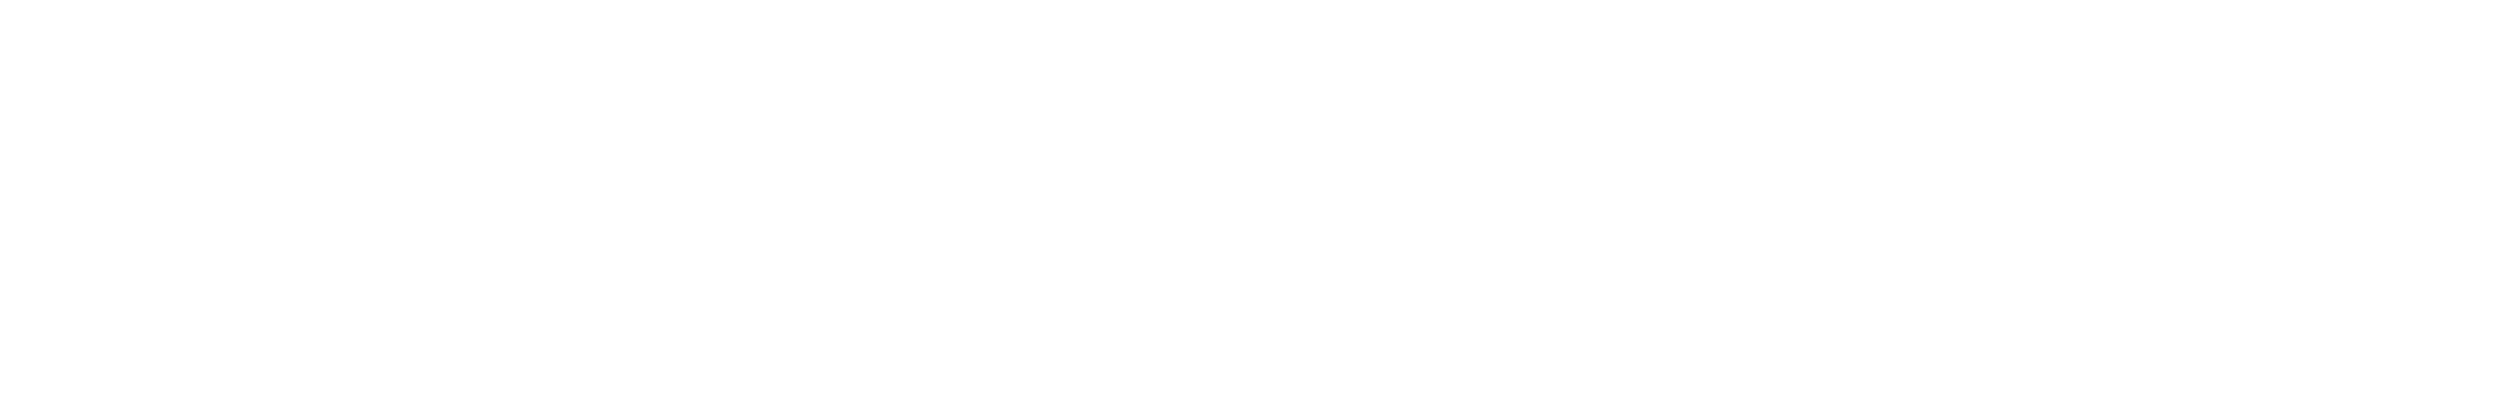 Balance Earth energy, skin and emotions.